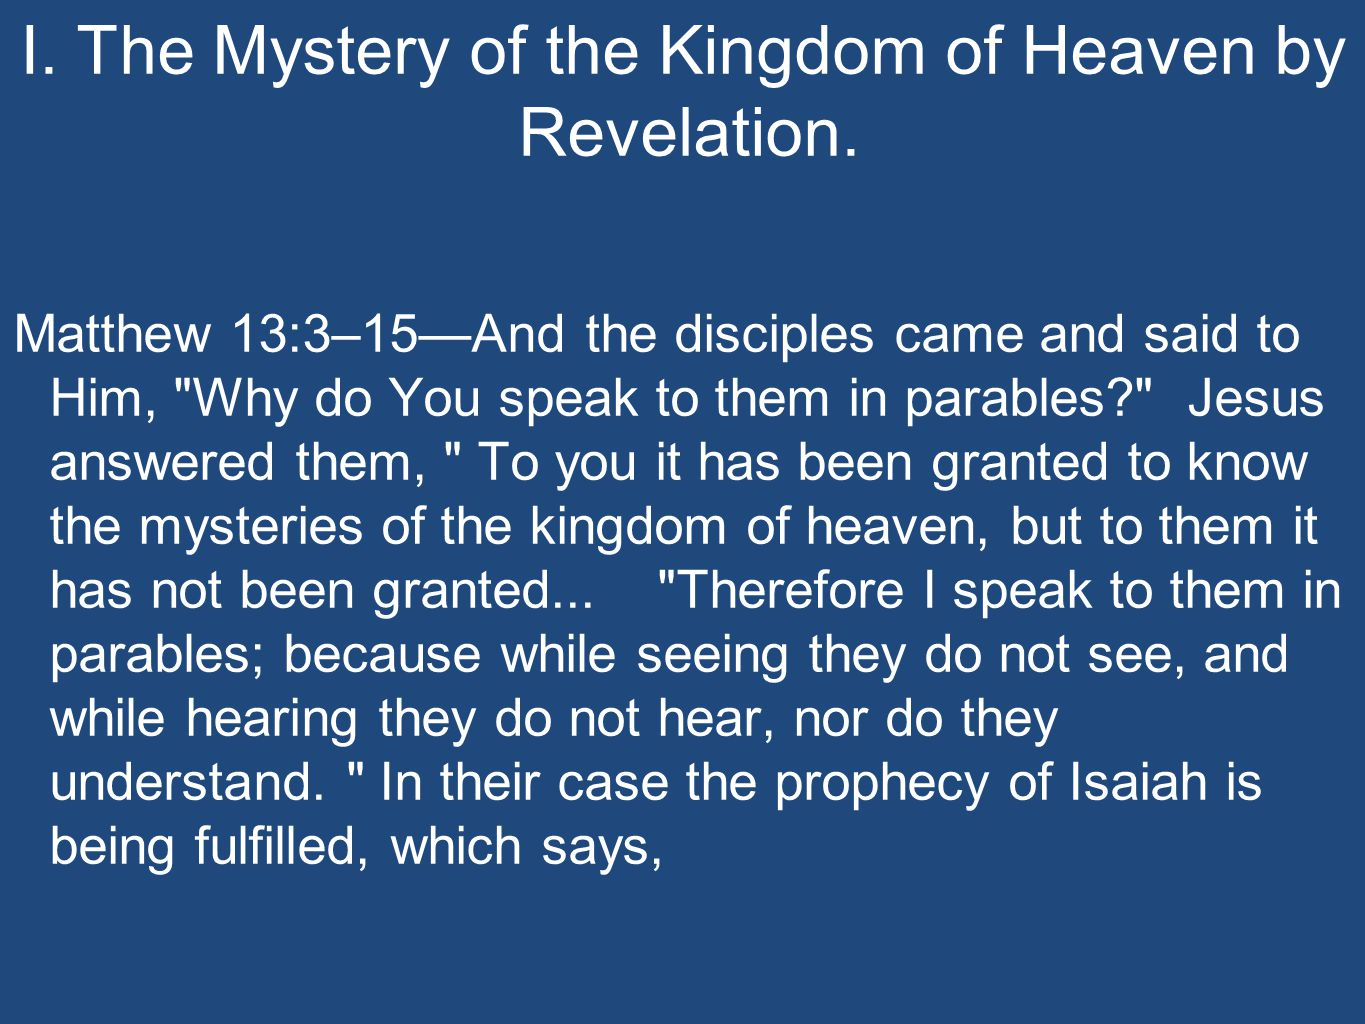 I. The Mystery of the Kingdom of Heaven by Revelation.